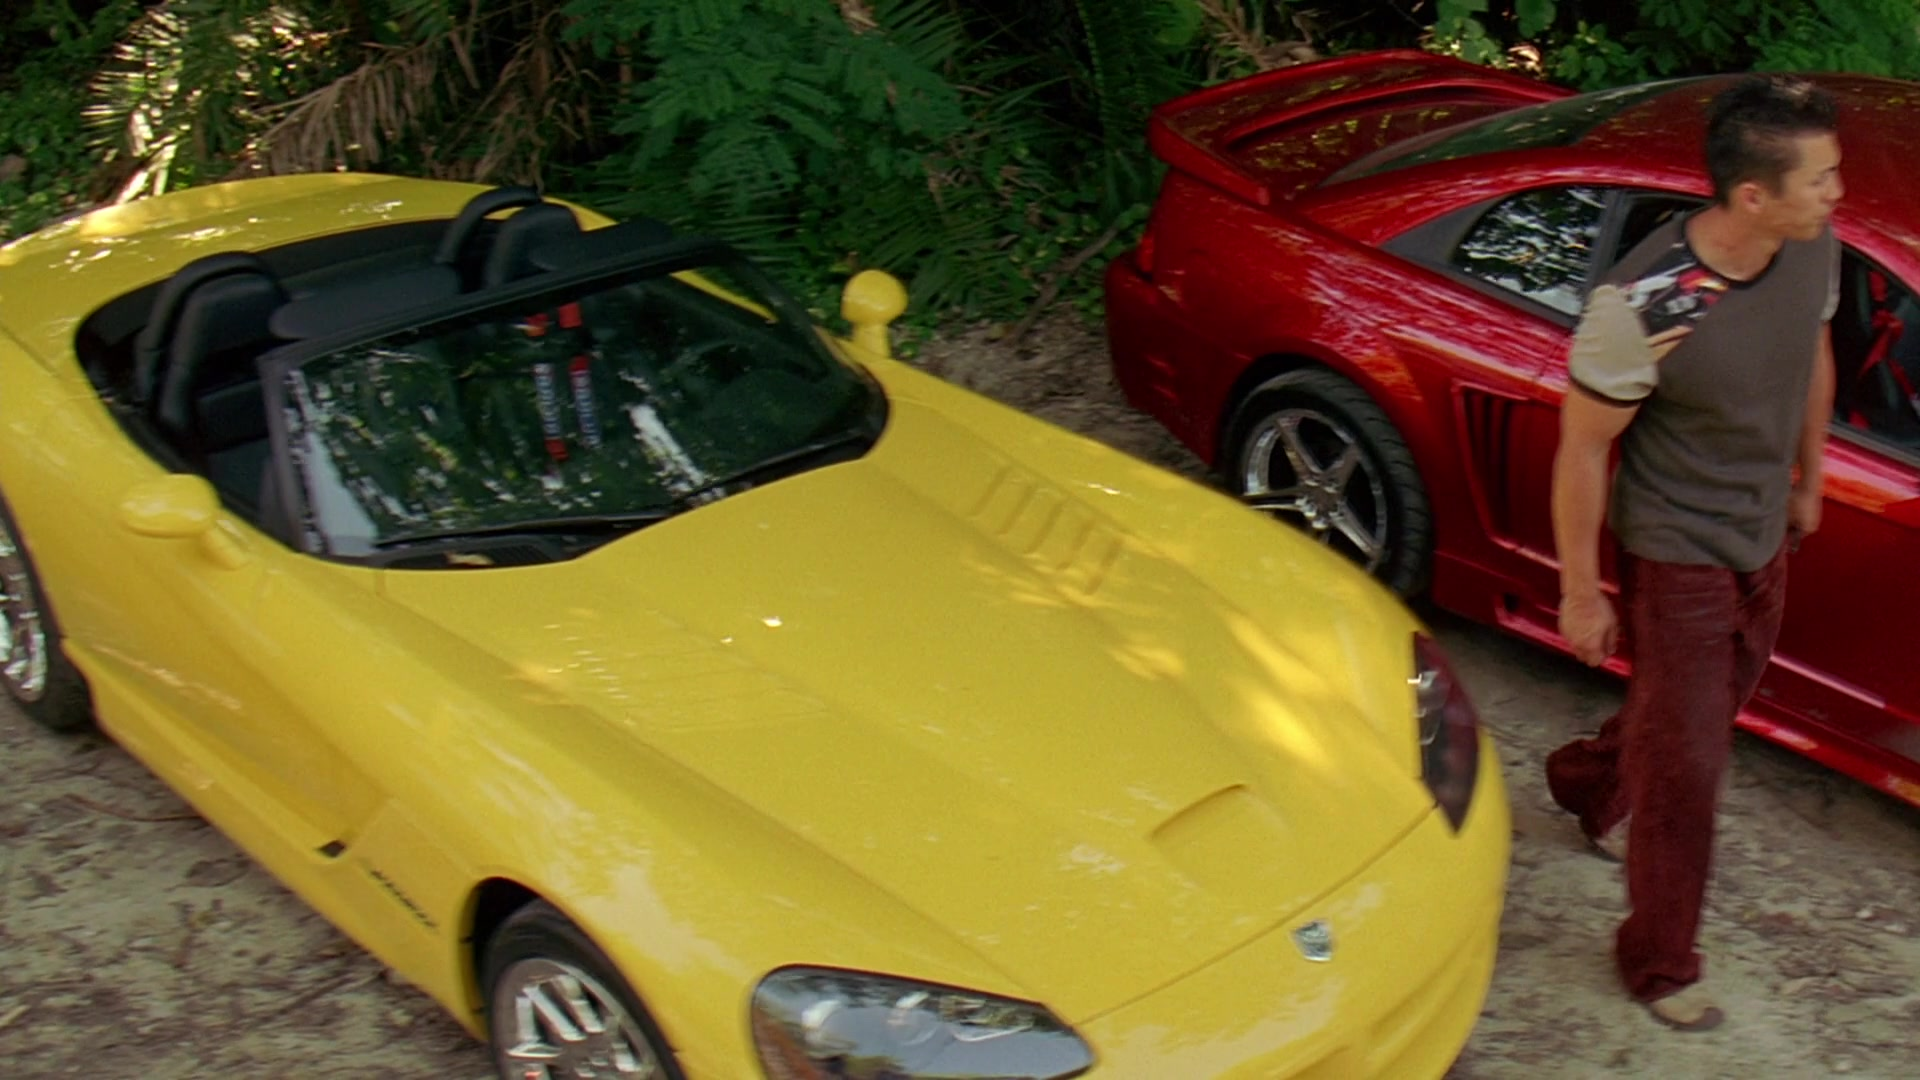 Dodge Viper Srt 10 Convertible Yellow Sports Car In 2 Fast 2 Furious 2003